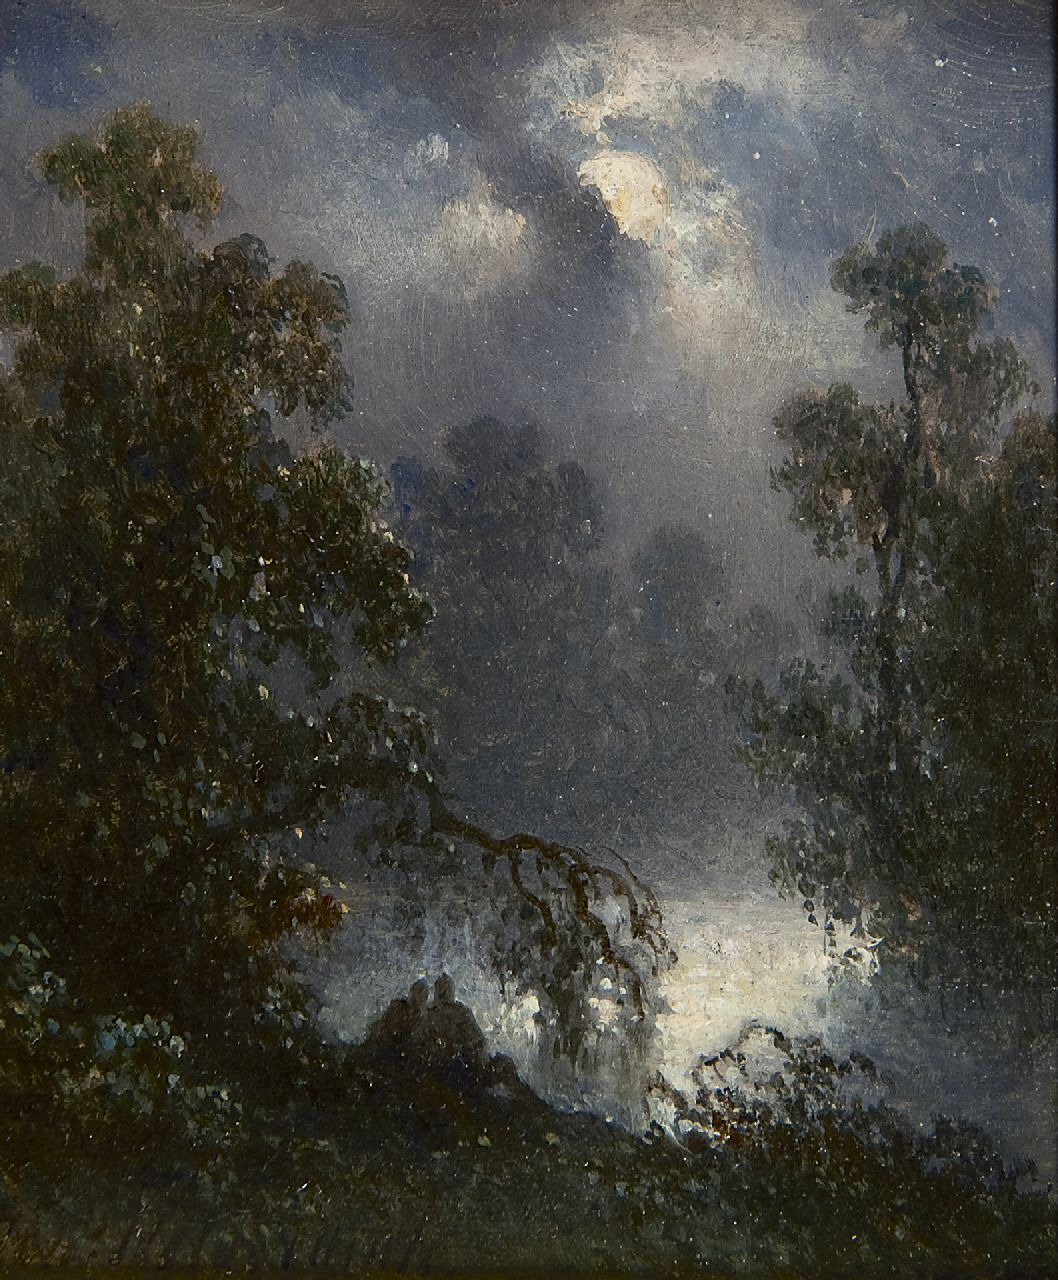 Hilverdink J.  | Johannes Hilverdink | Paintings offered for sale | A pond with two figures by moonlight, oil on panel 10.8 x 9.1 cm, signed l.l.